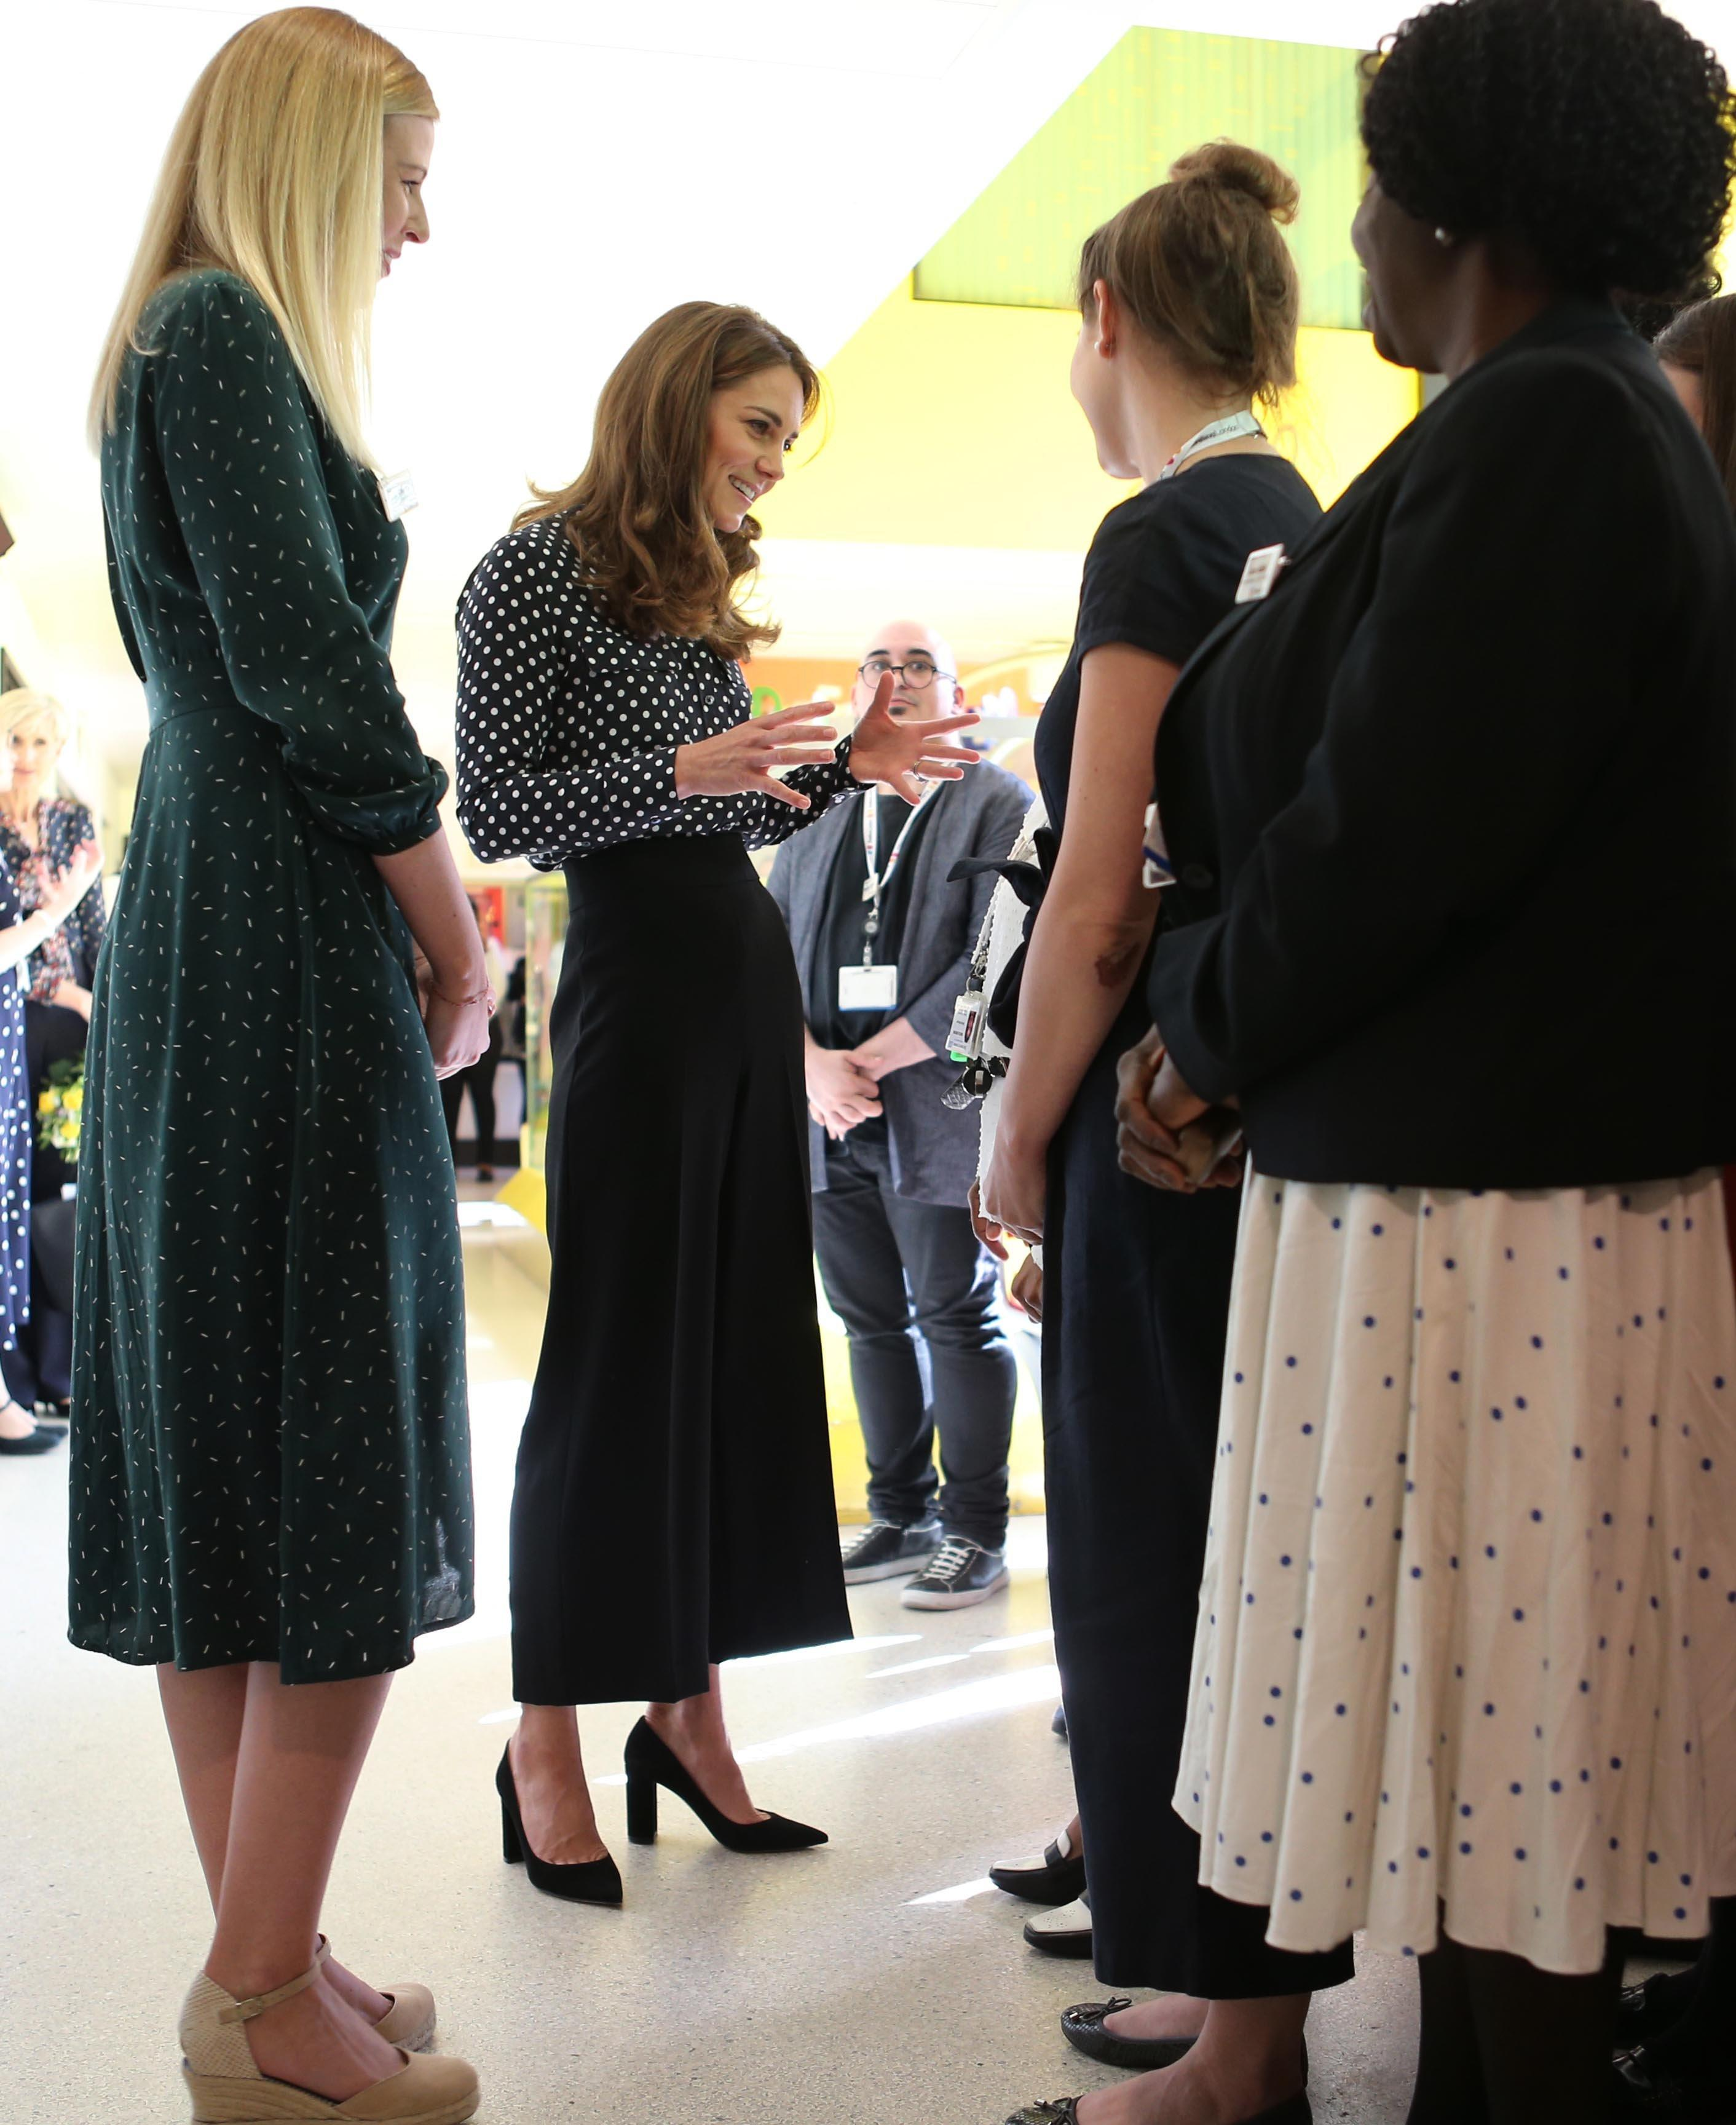 The Duchess of Cambridge meets the Southwark Family Nurse Partnership team during a visit to Sunshine House Children and Young People's Health and Development Centre [Photo: PA]